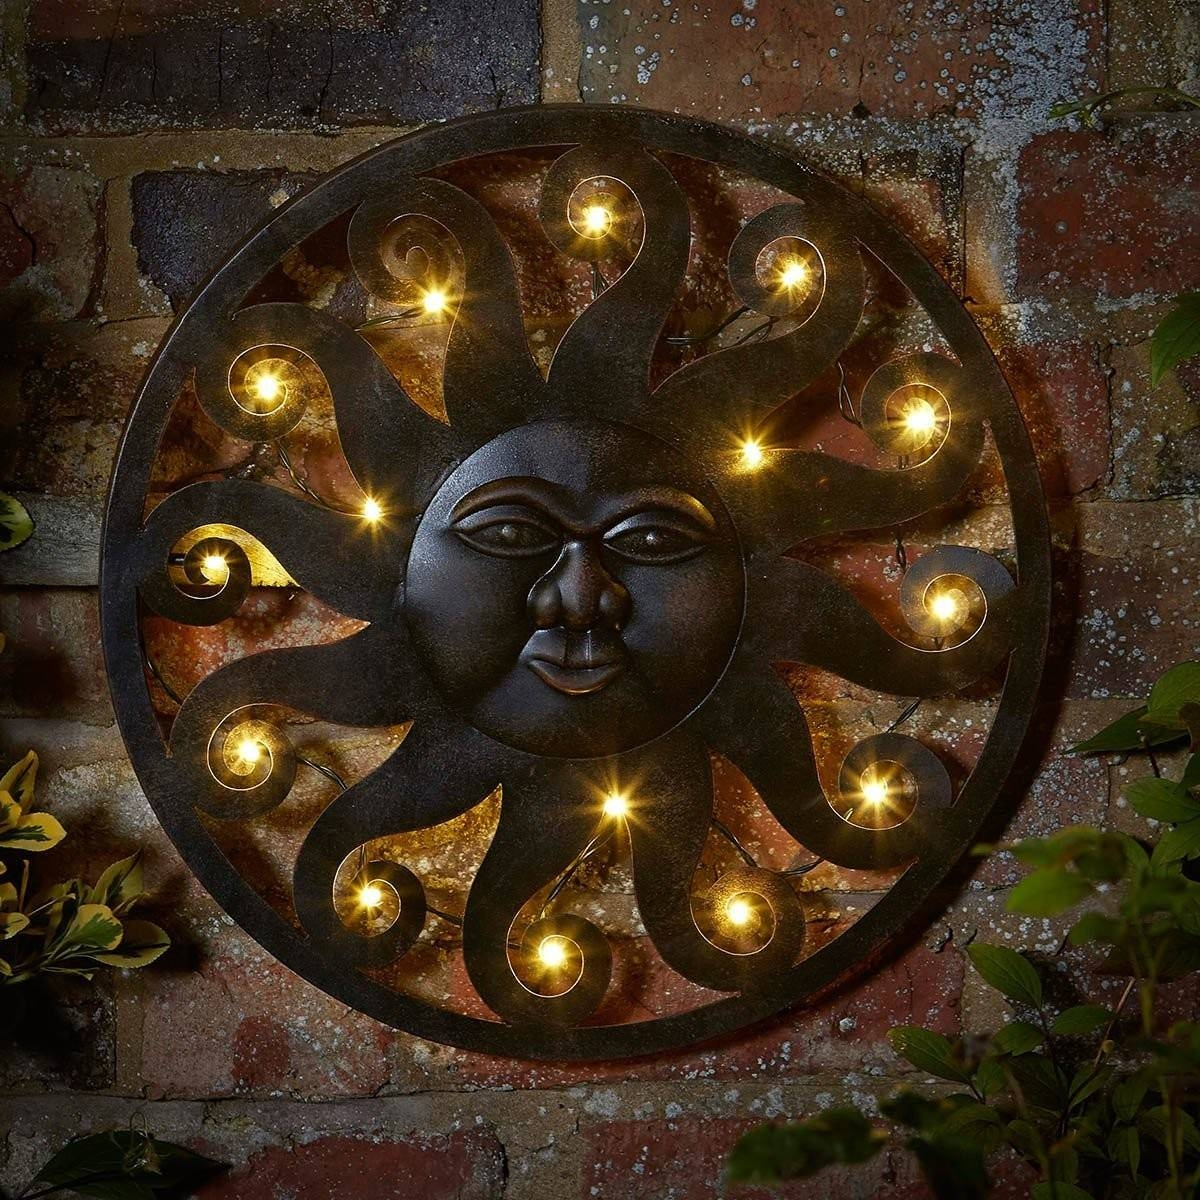 Large Outdoor Metal Wall Art Outdoor Garden Wall Art Outdoor Paint With Regard To Most Up To Date Metal Wall Art For Gardens (View 13 of 20)